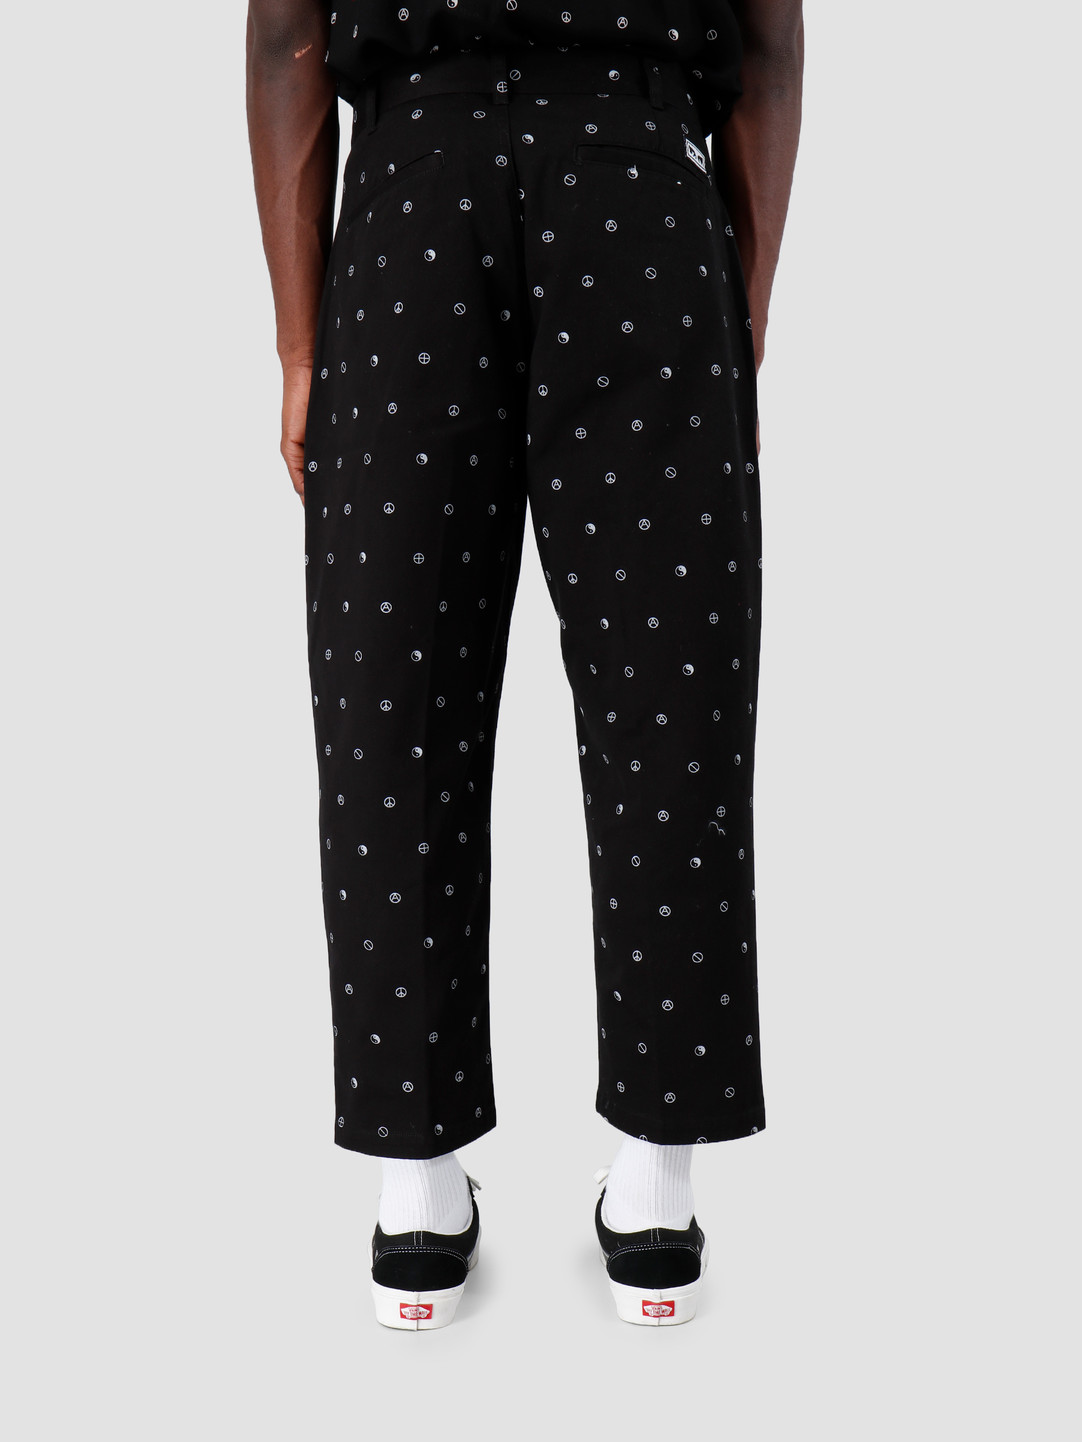 Obey Obey Fubar Pleated Printed Pant BLK 142020129